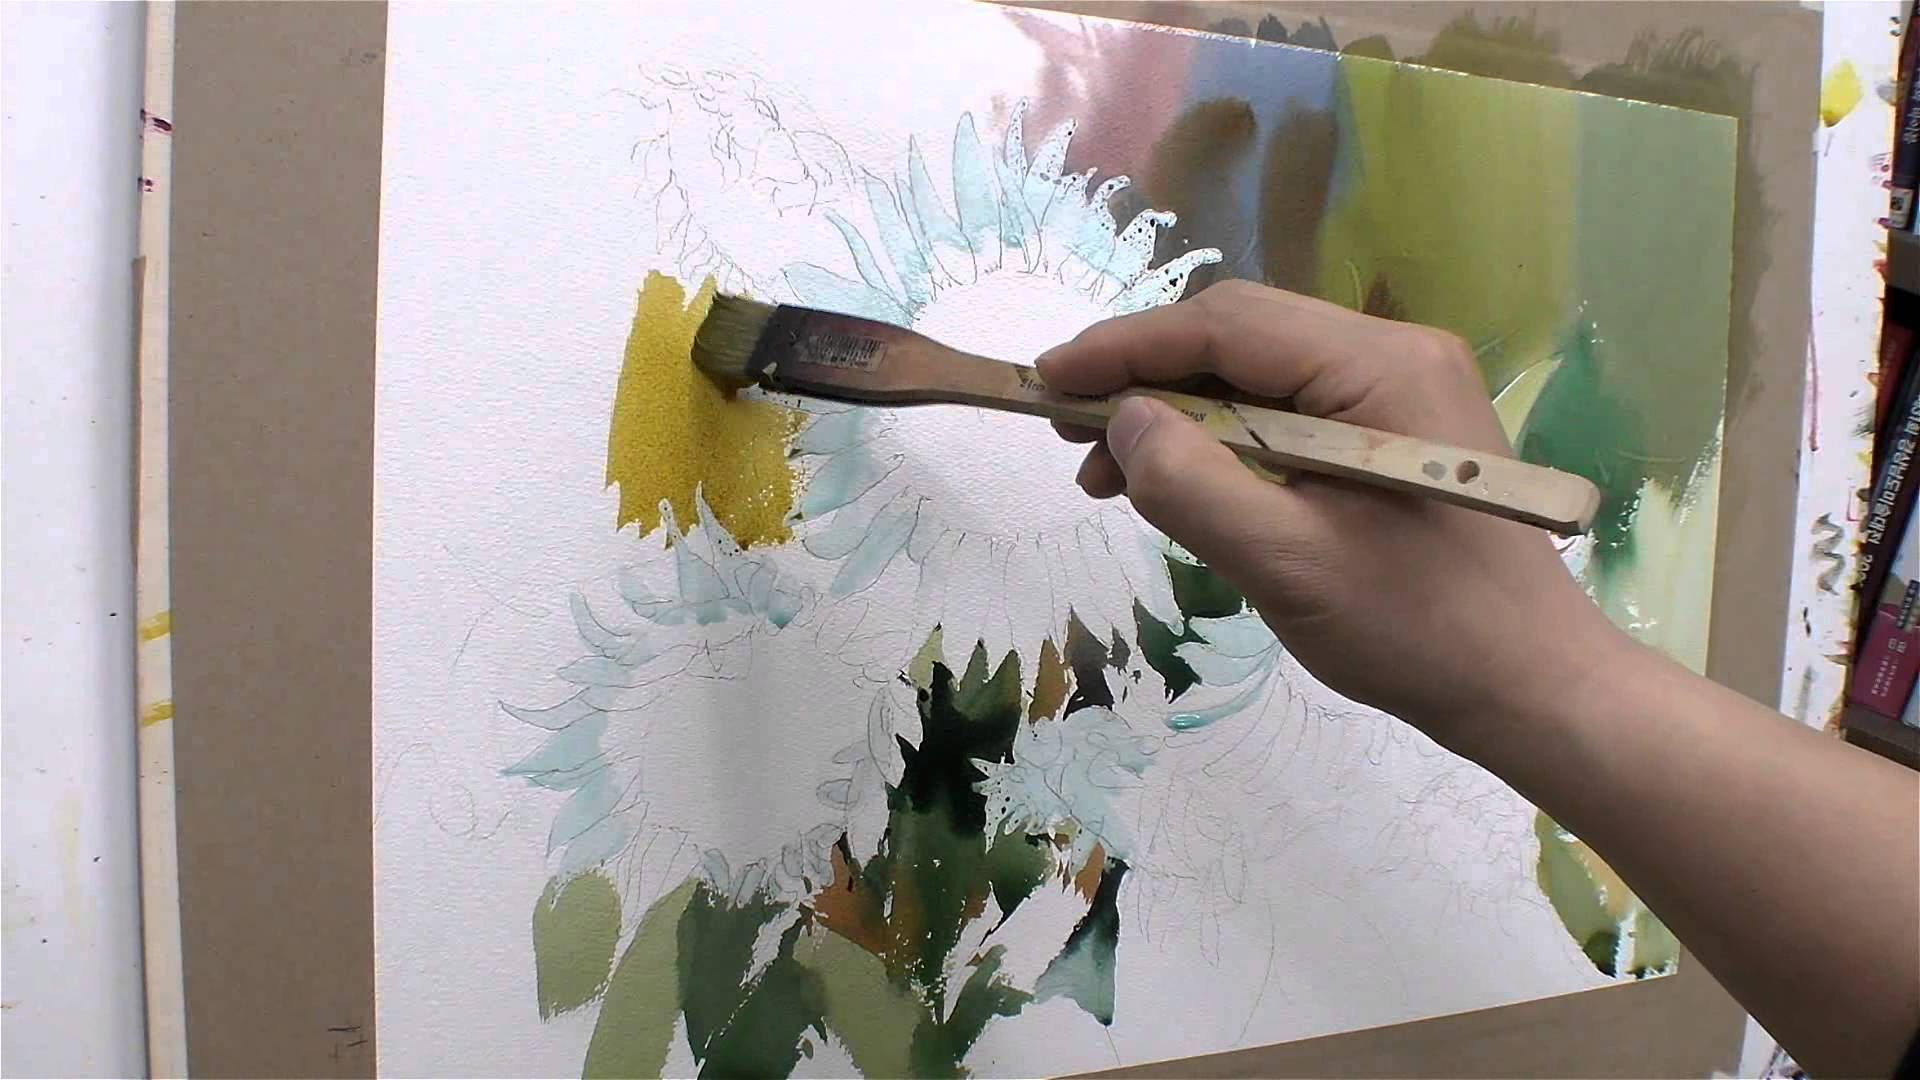 Pittura Acrilica Video 2 해바라기3 Youtube Acquerellisti Nel 2019 Watercolor Video